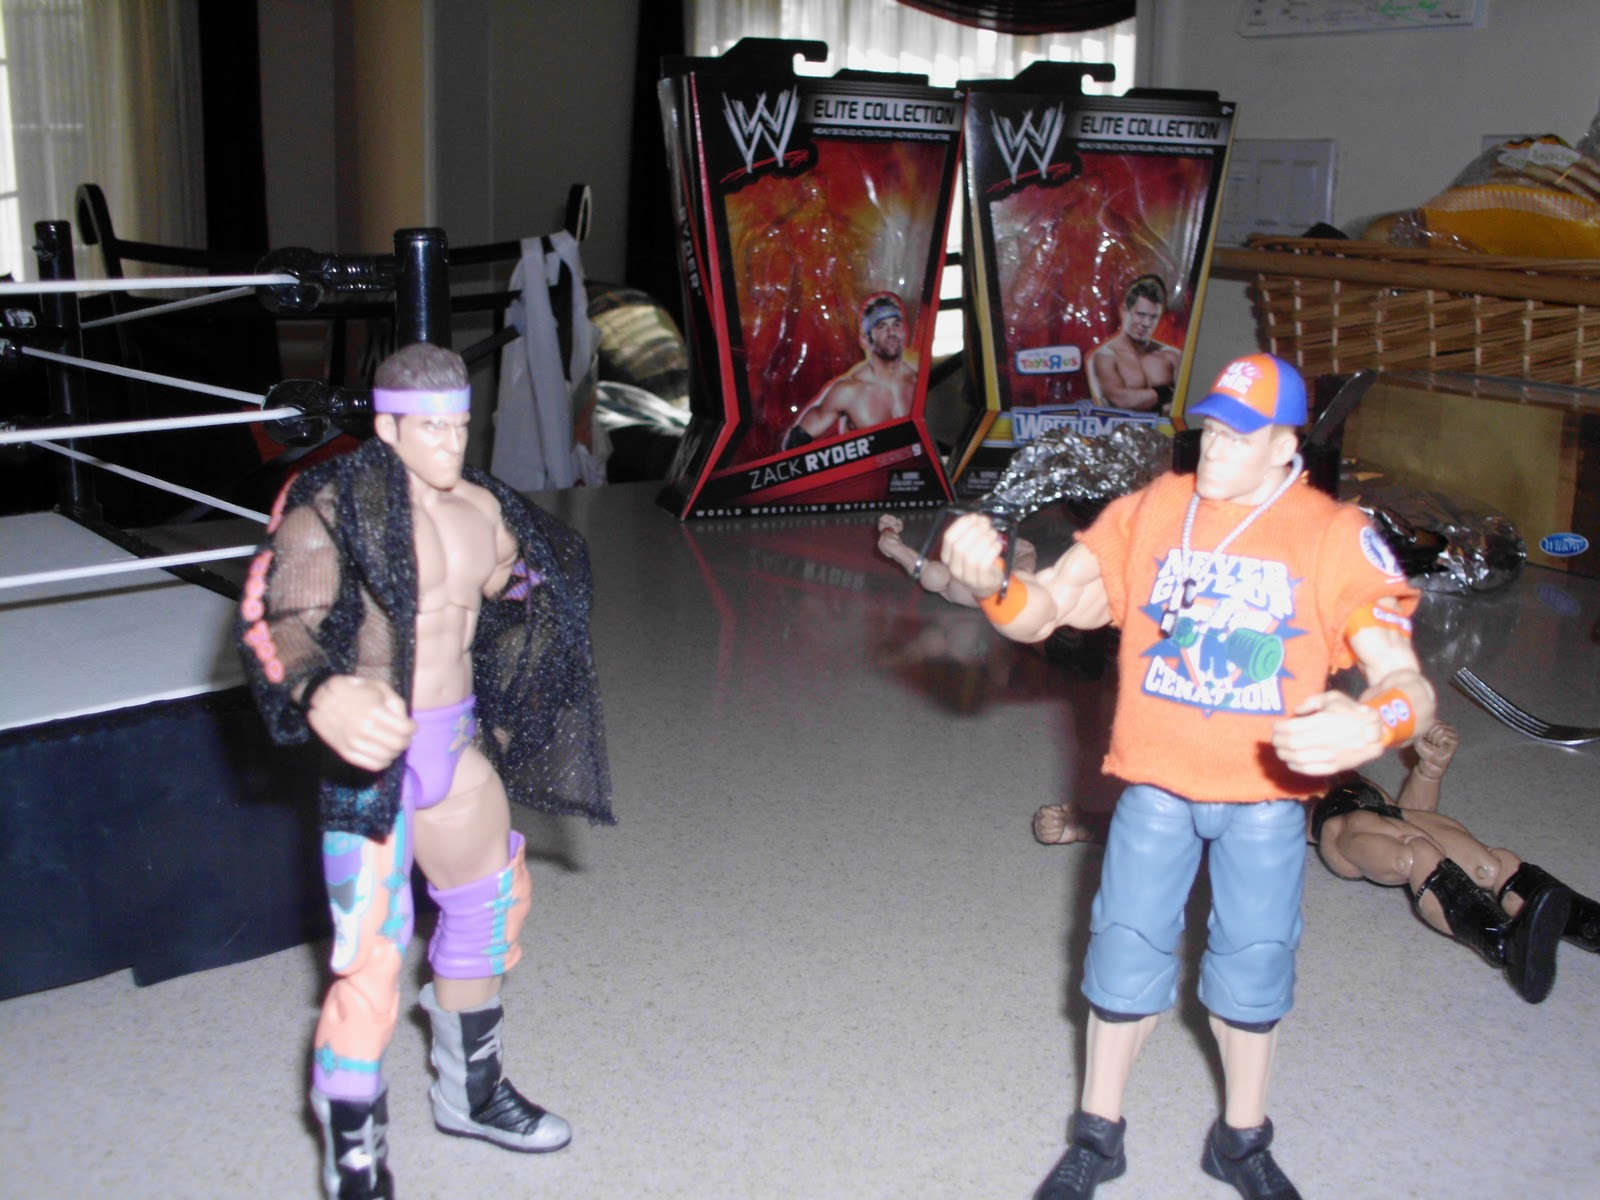 Zack Ryder Elite 9 http://the-review-city.blogspot.com/2011/10/wwe-mattel-elite-series-9-zack-ryder.html